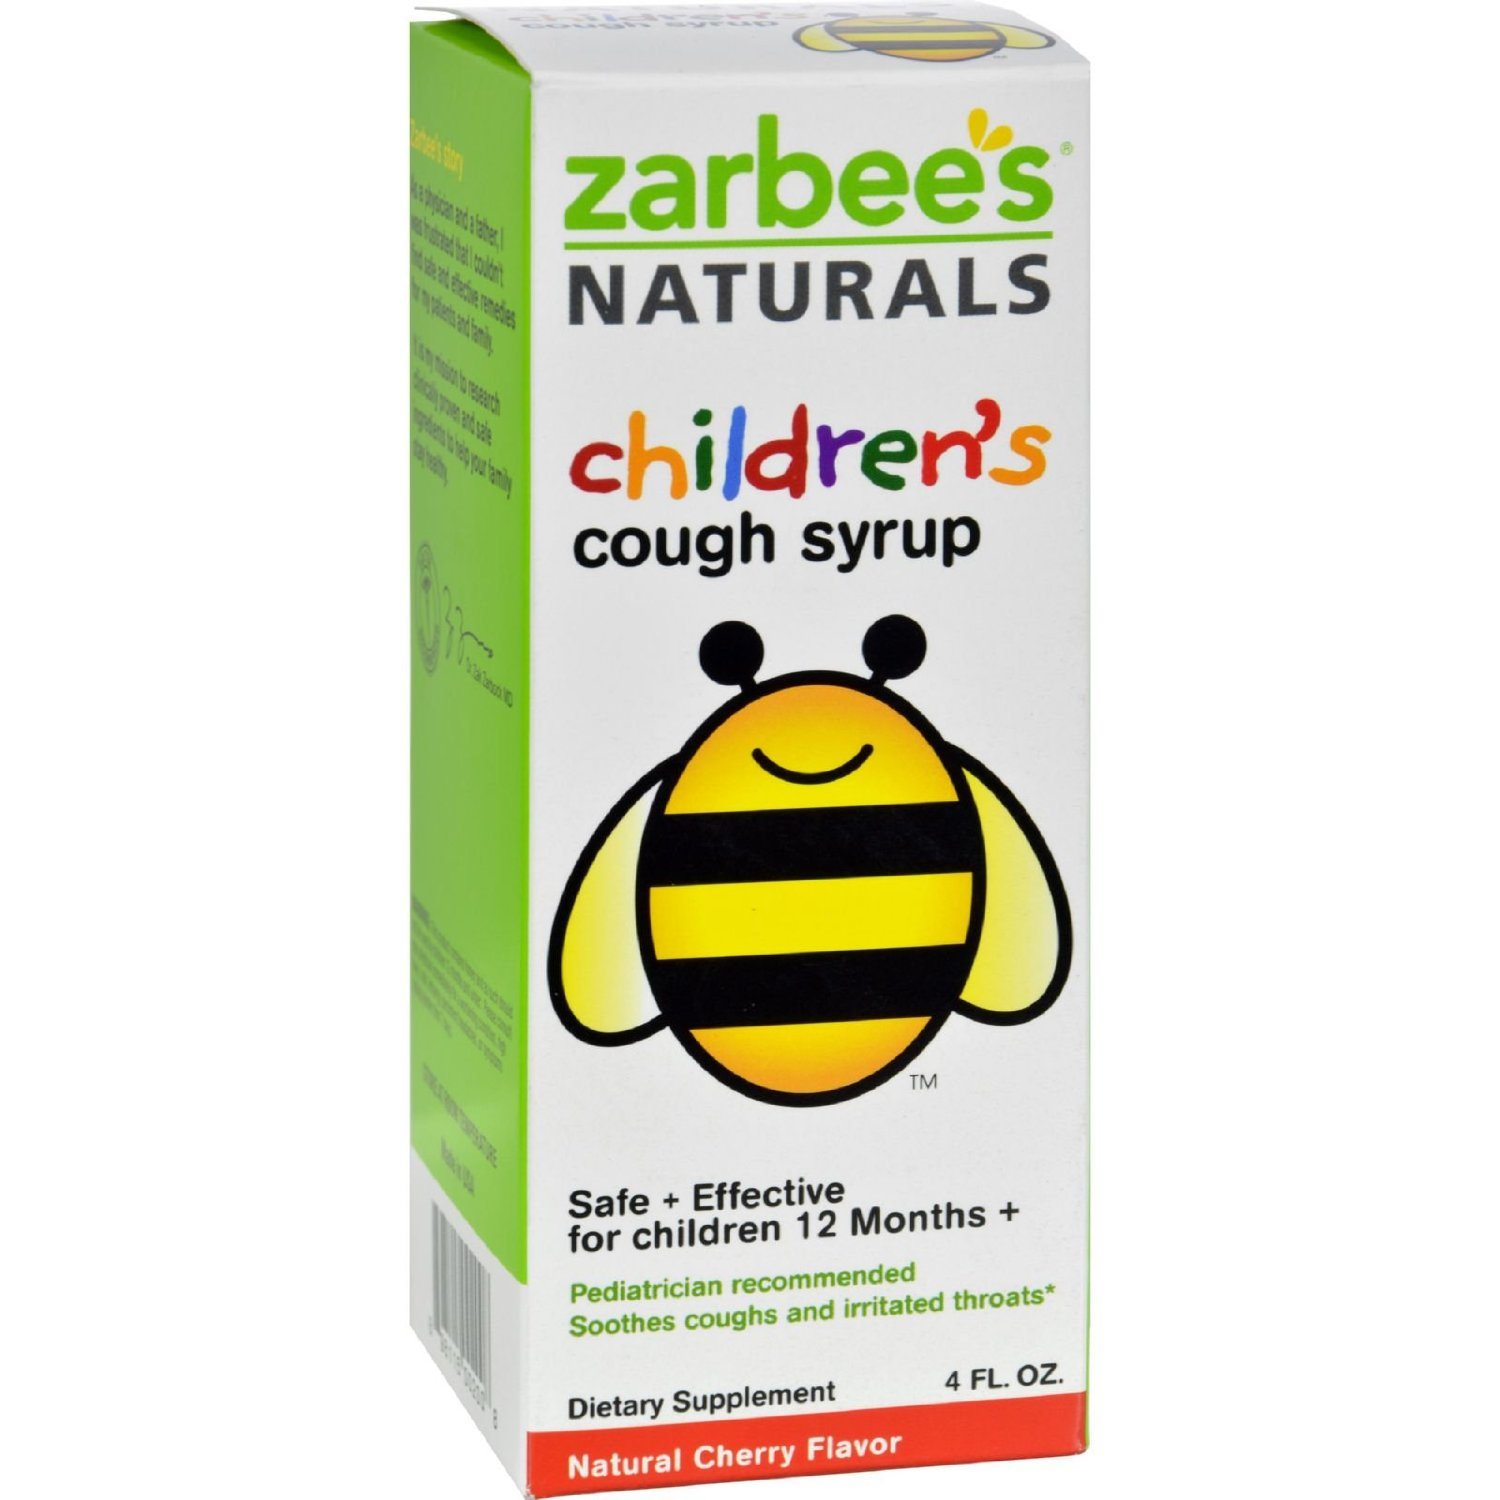 3 Pack ZarBee's Naturals Children's Cough Syrup Natural Cherry Flavor 4 oz Each